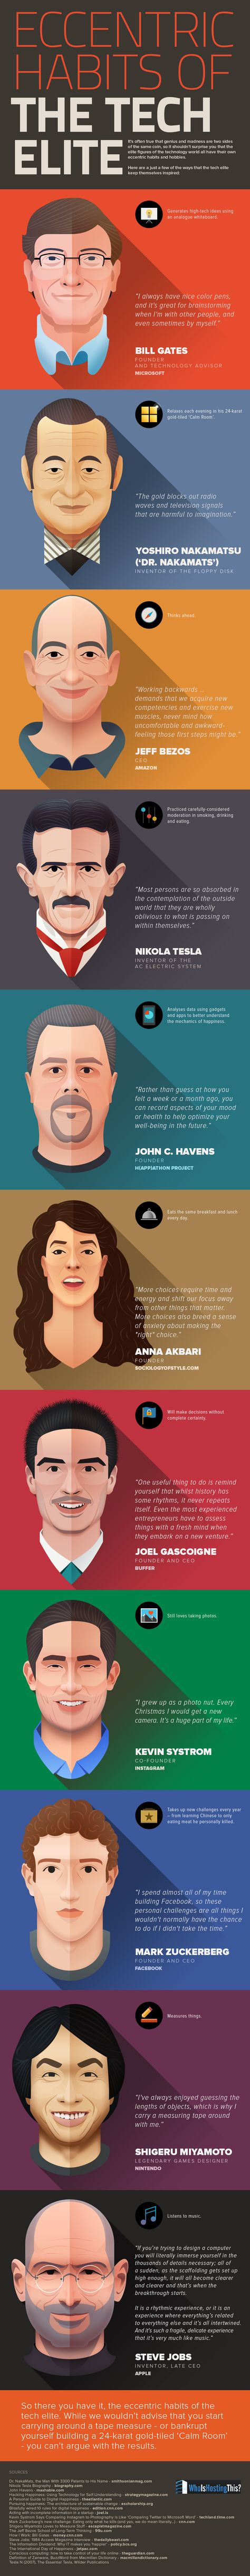 Eccentric Habits of Tech Geniuses Infographic - e-Learning Infographics